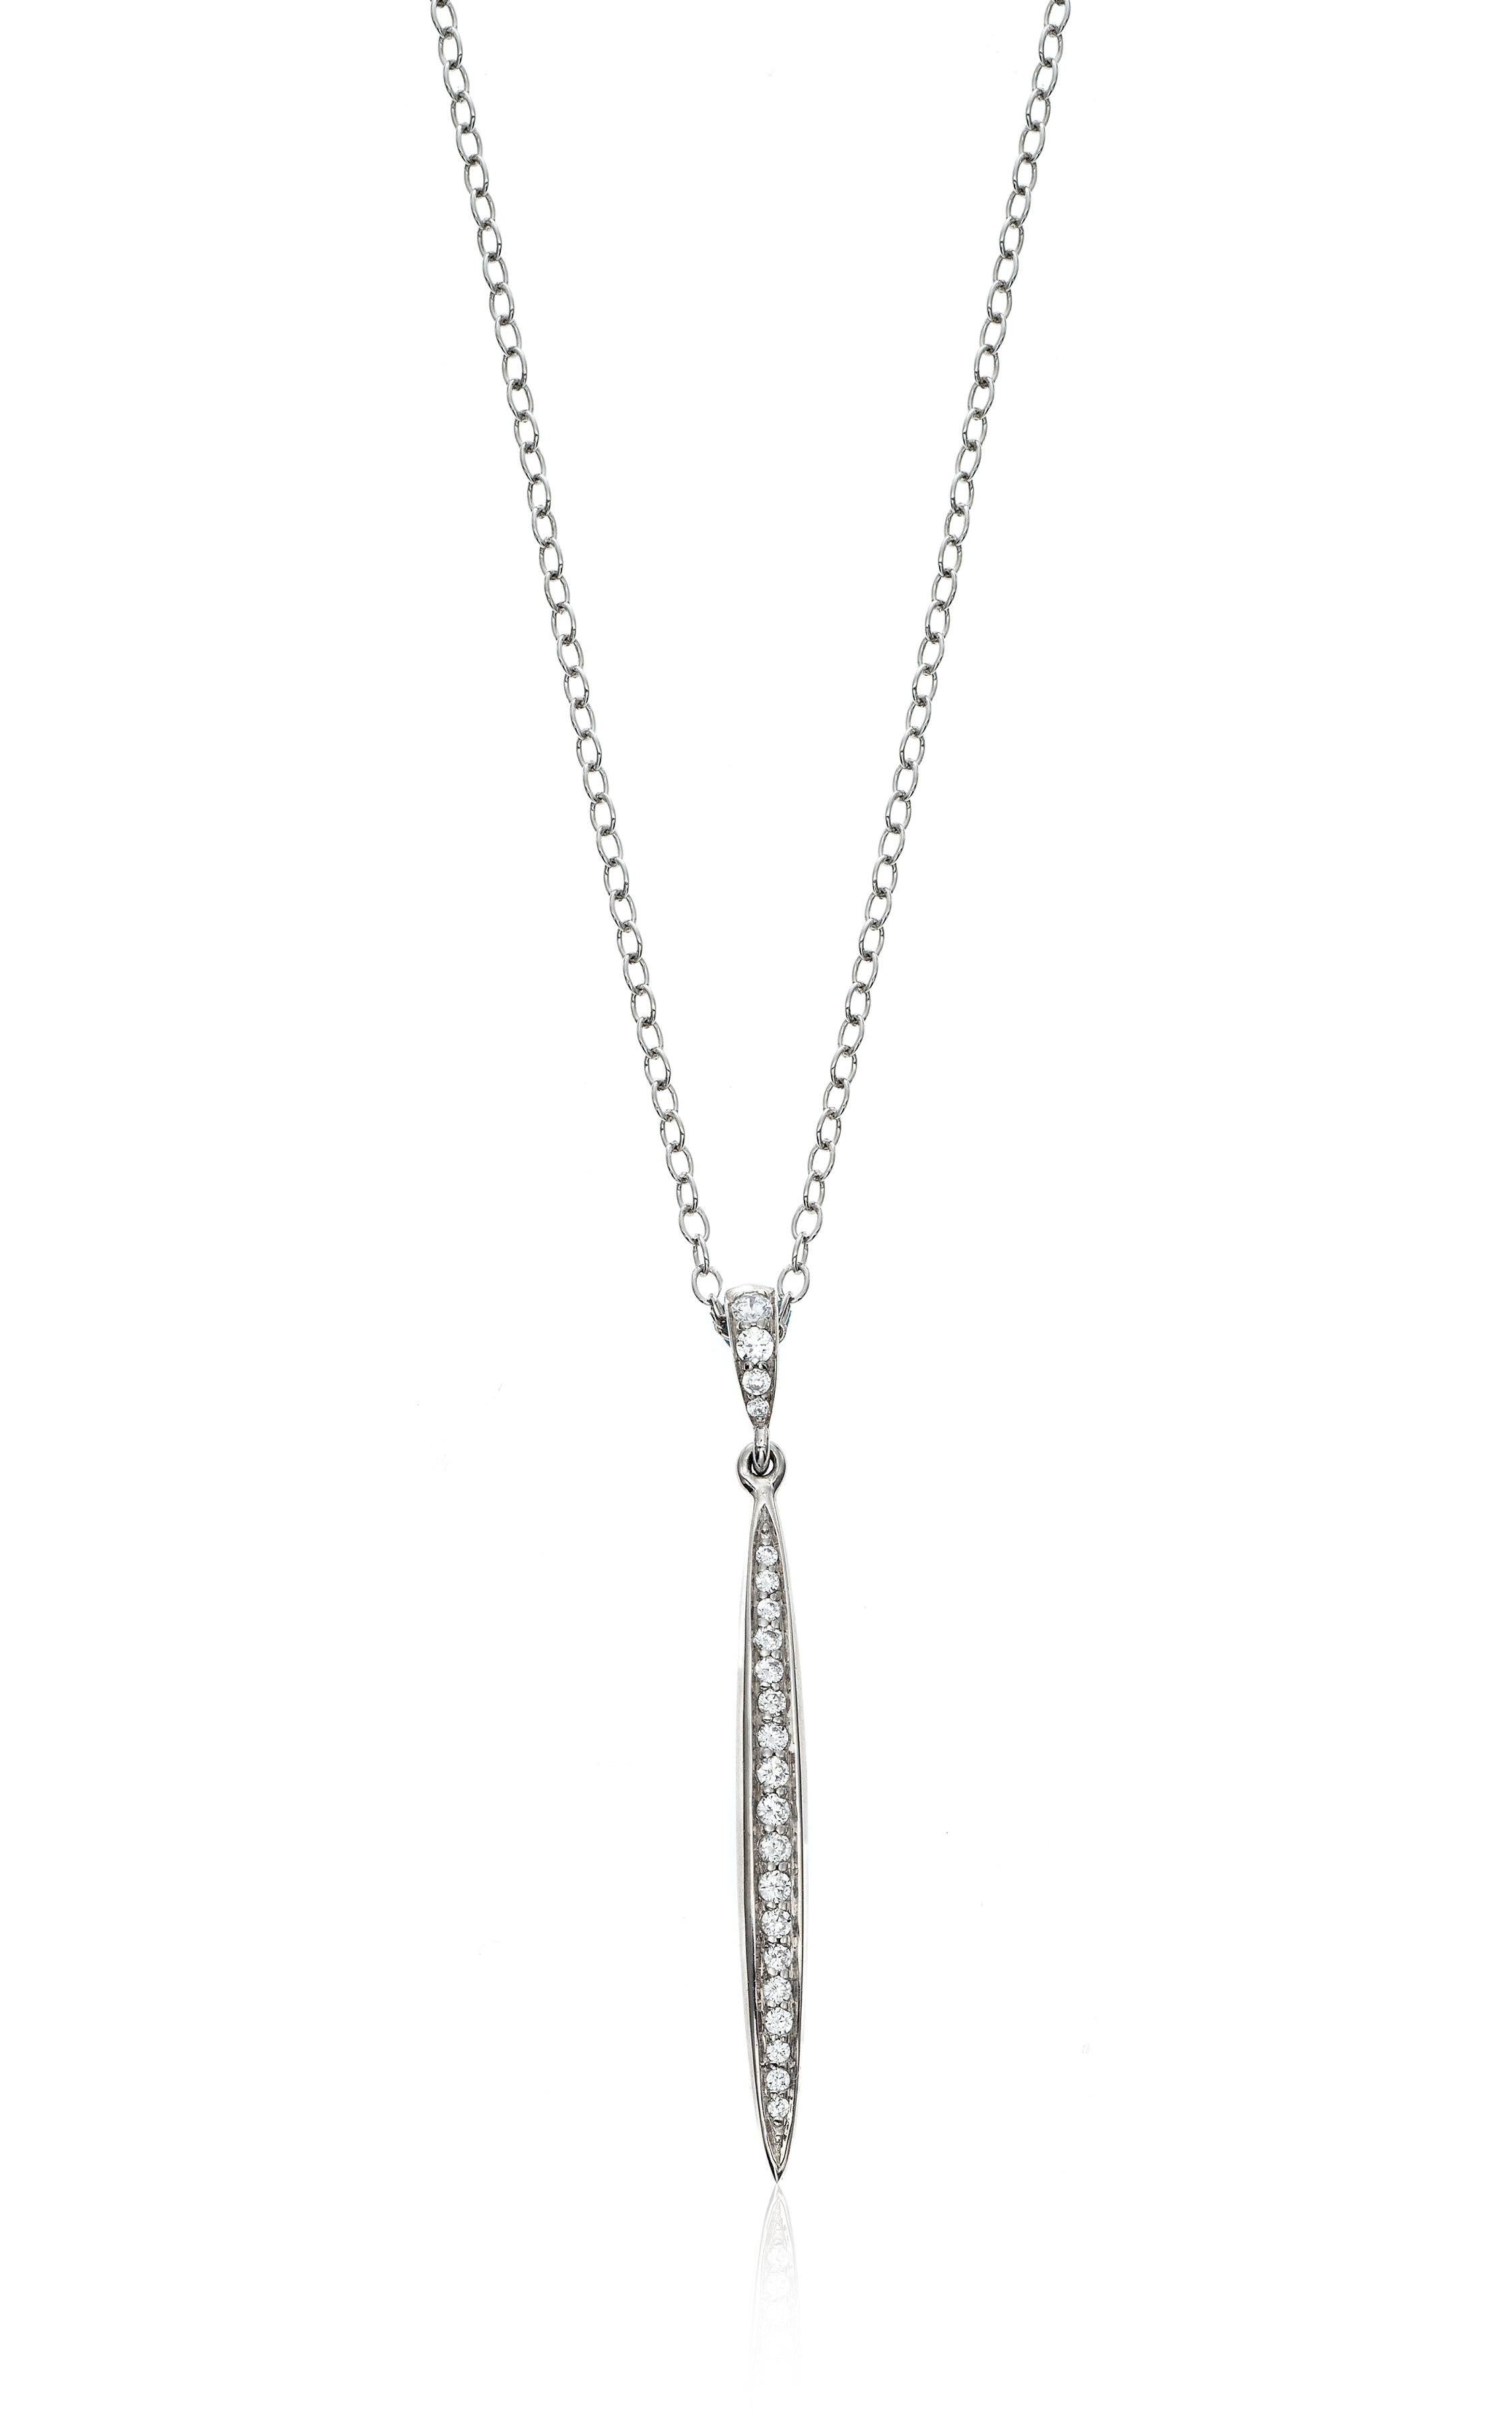 Beny Sofer Necklaces Necklace SP15-74B product image